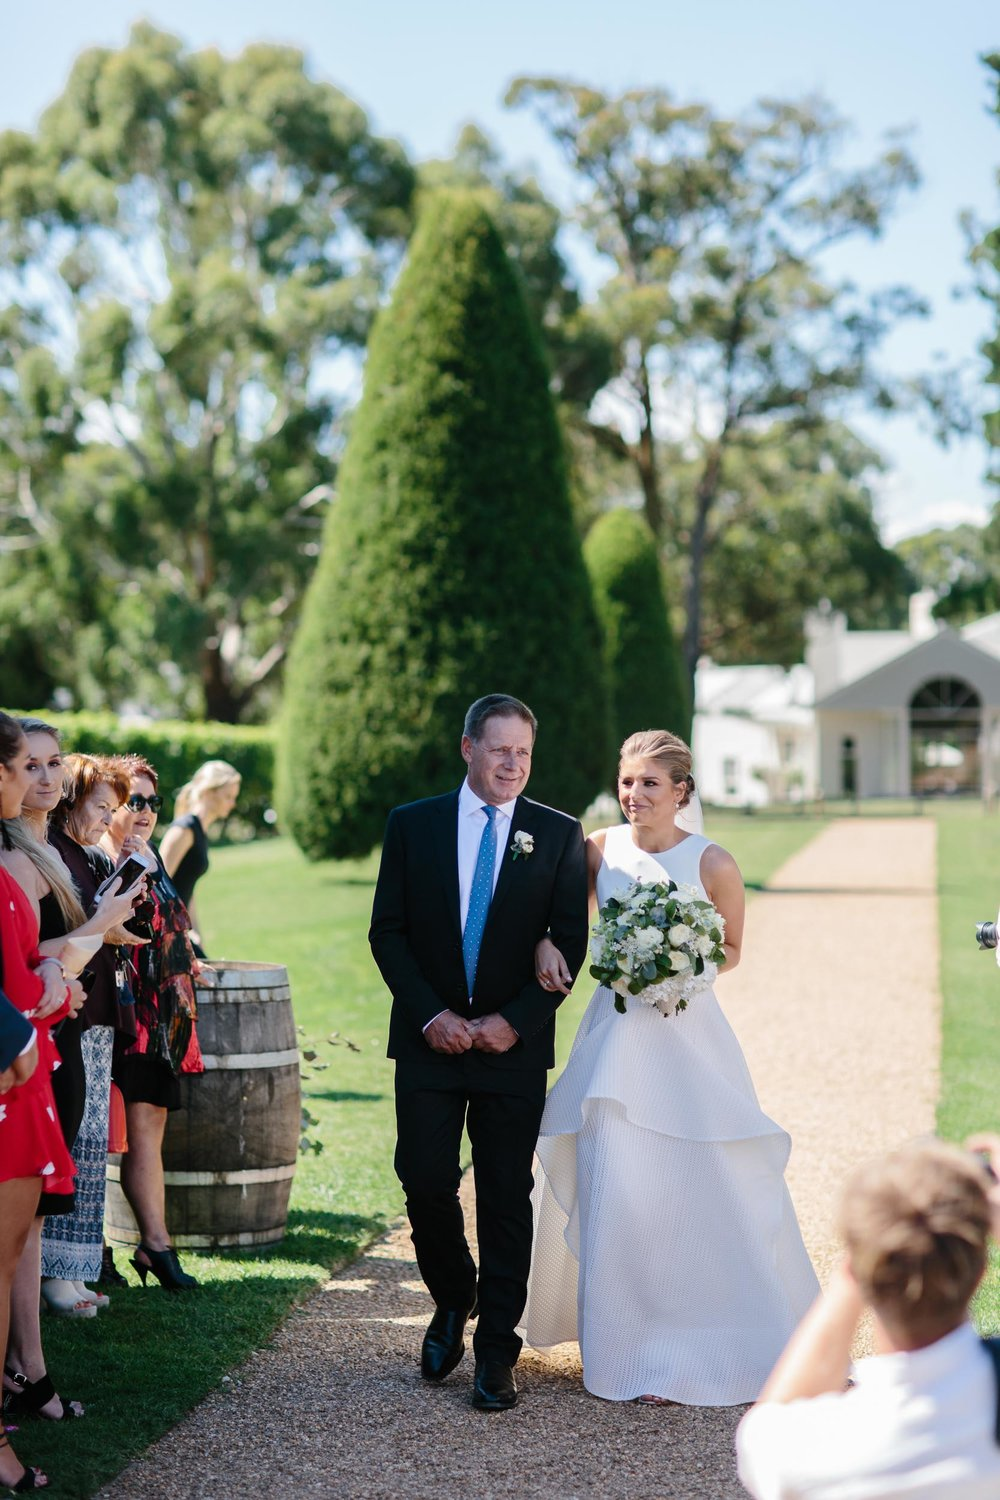 Kas-Richards-Mornington-Peninsula-Wedding-Lindenderry-Red-Hill-202.jpg